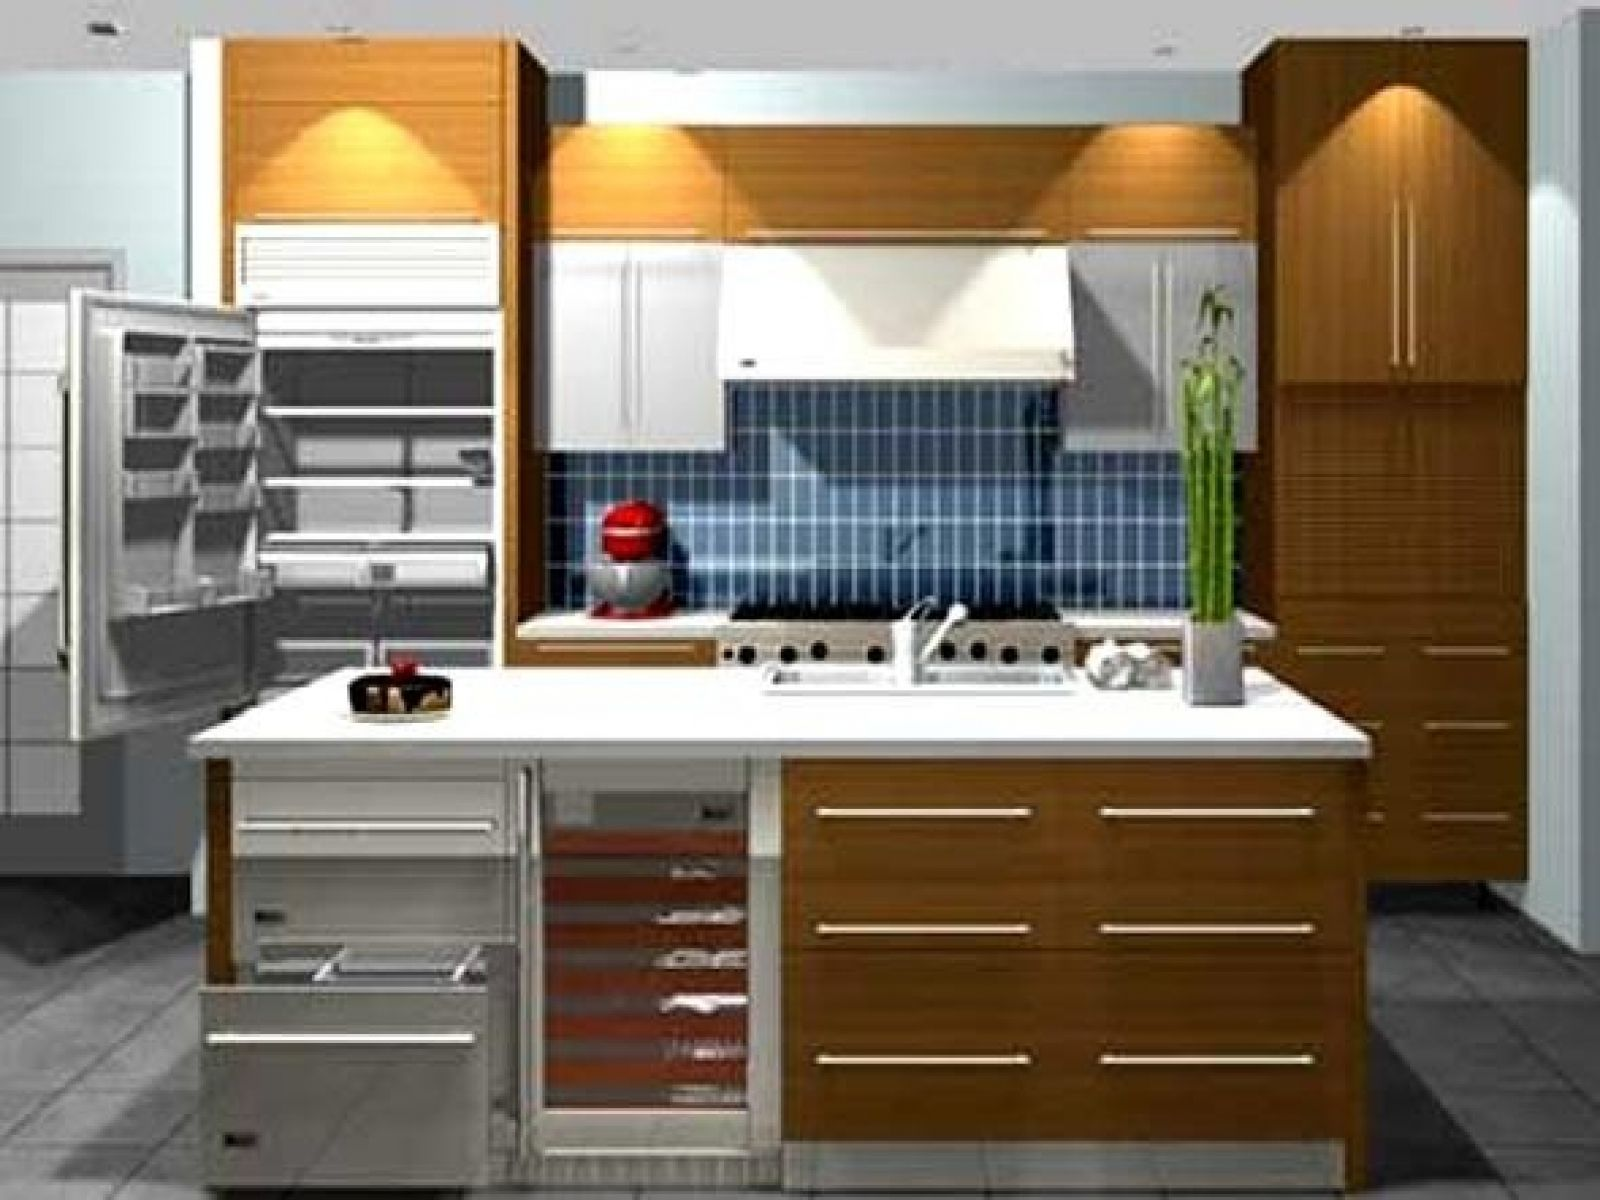 Free 3d Kitchen Cabinet Design Software Besf Of Ideas Kitchen Design Ideas Using 3d Free Online